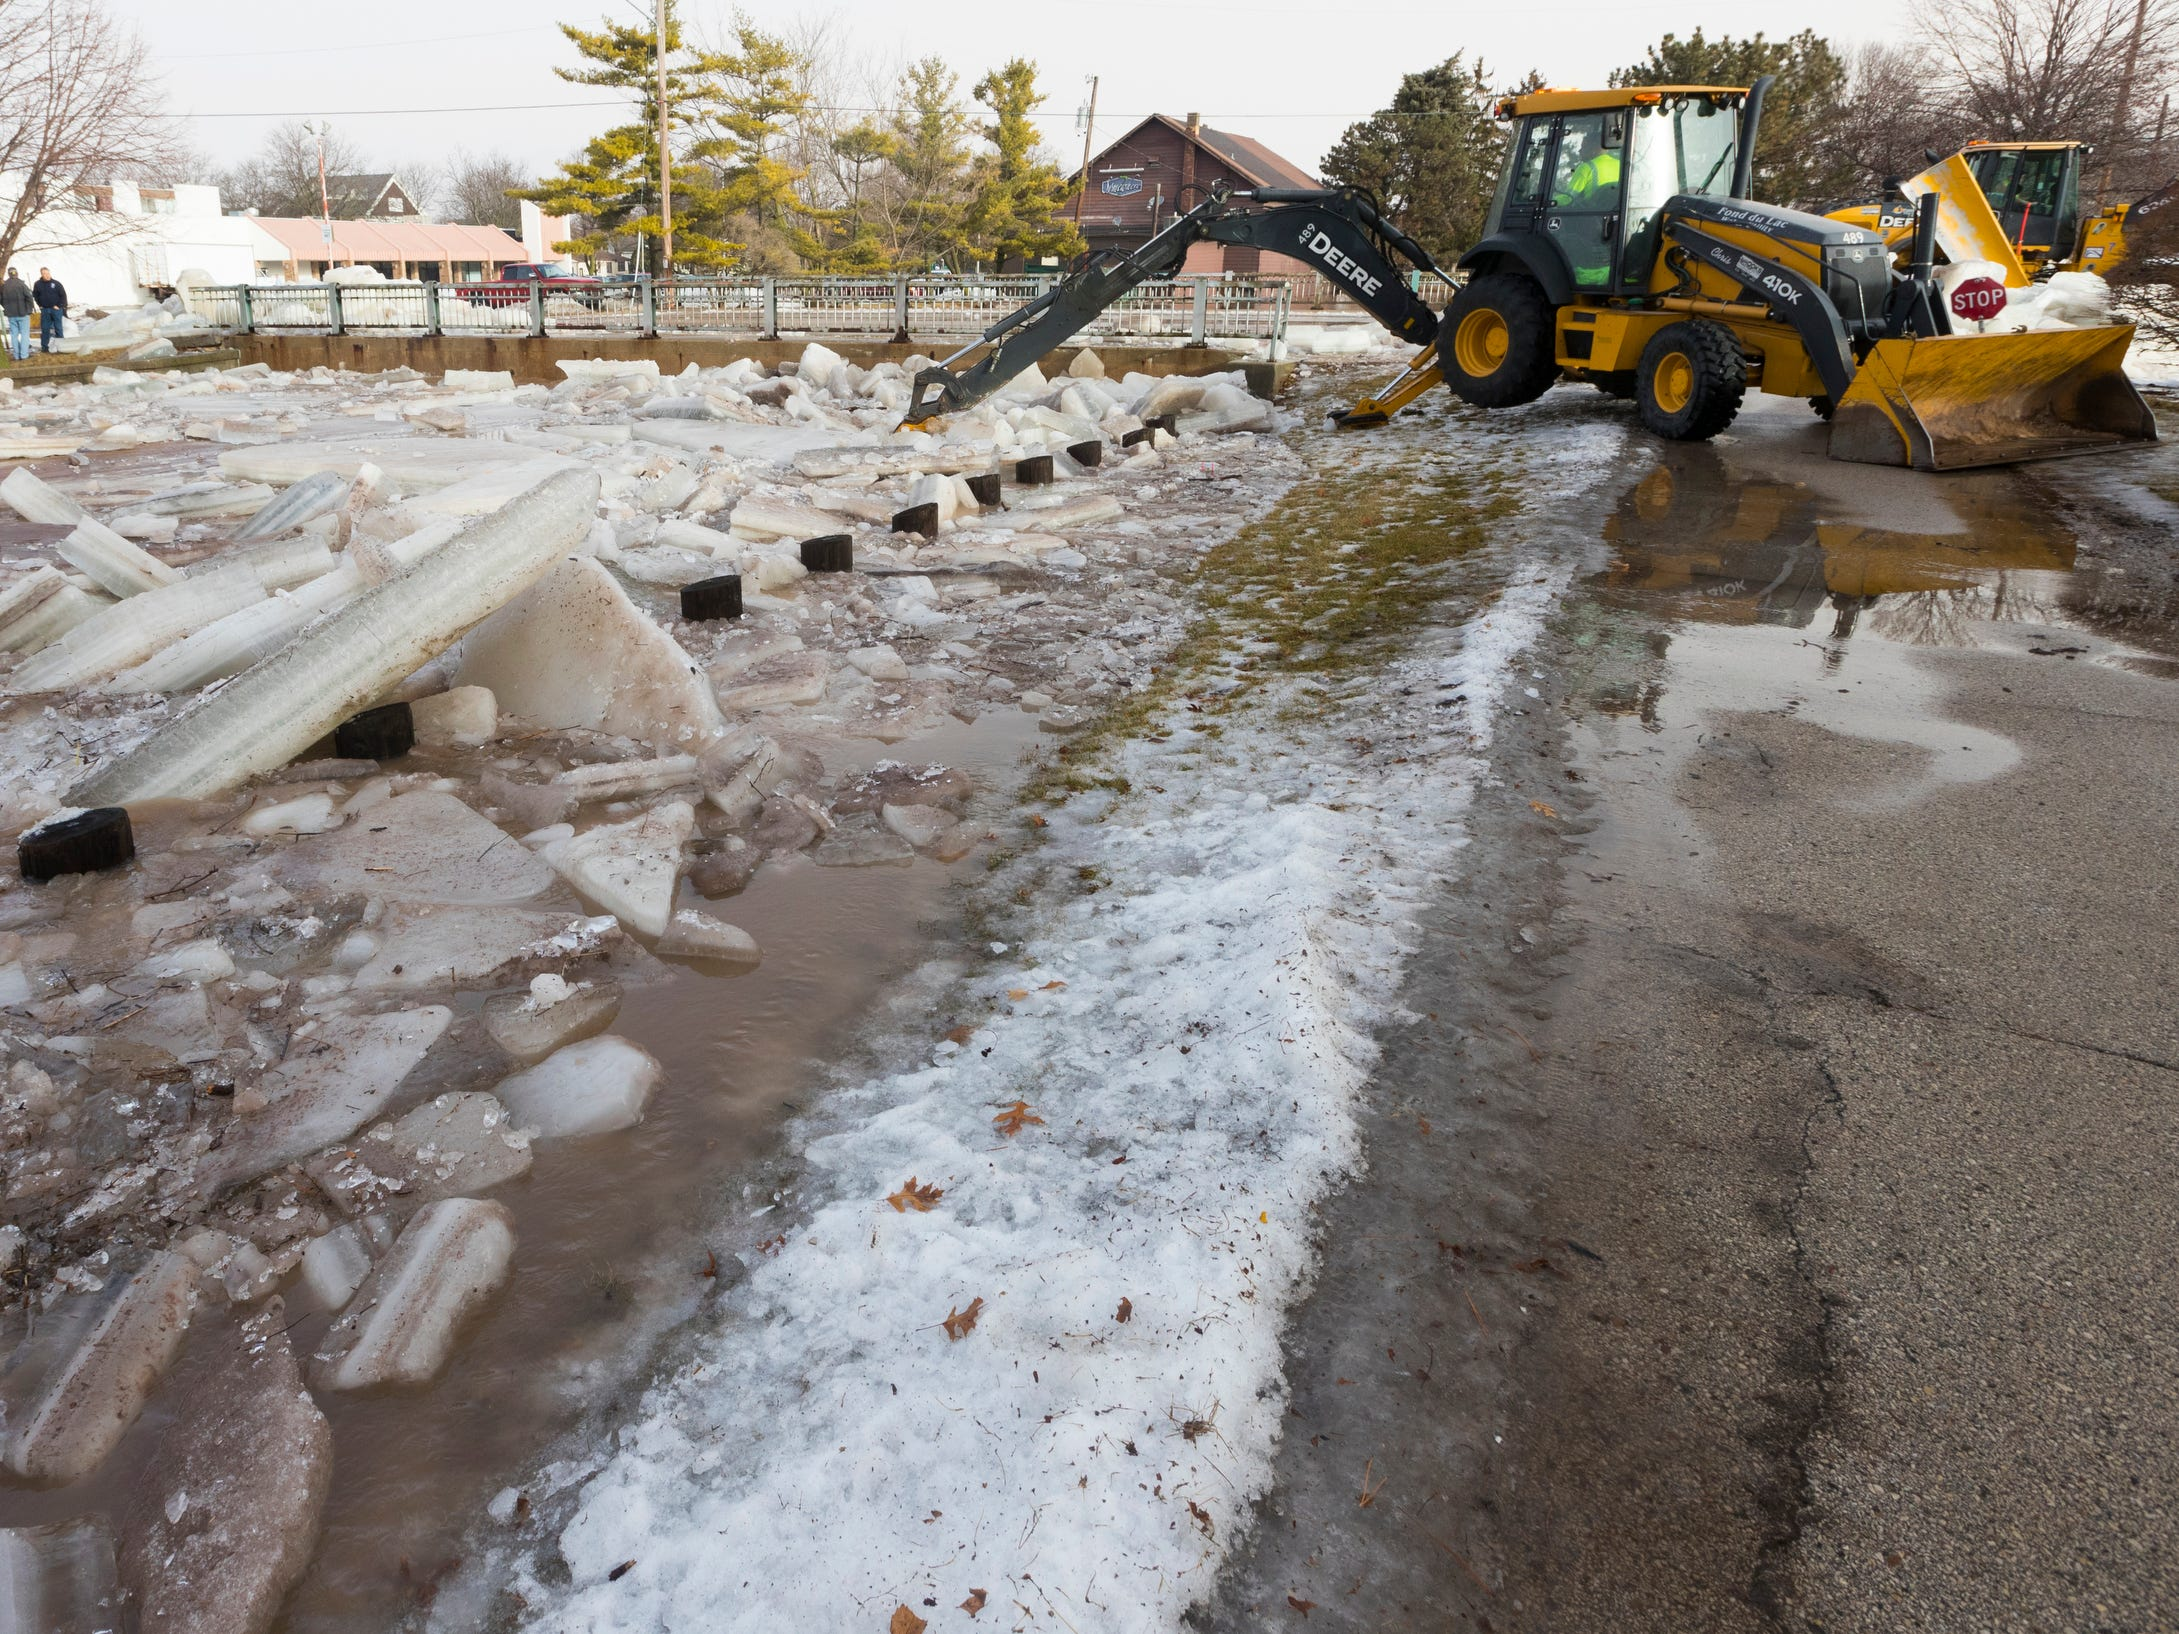 City of Fond du Lac public works crews clear an ice jam on the Fond du Lac River that caused flooding Thursday near downtown Fond du Lac.